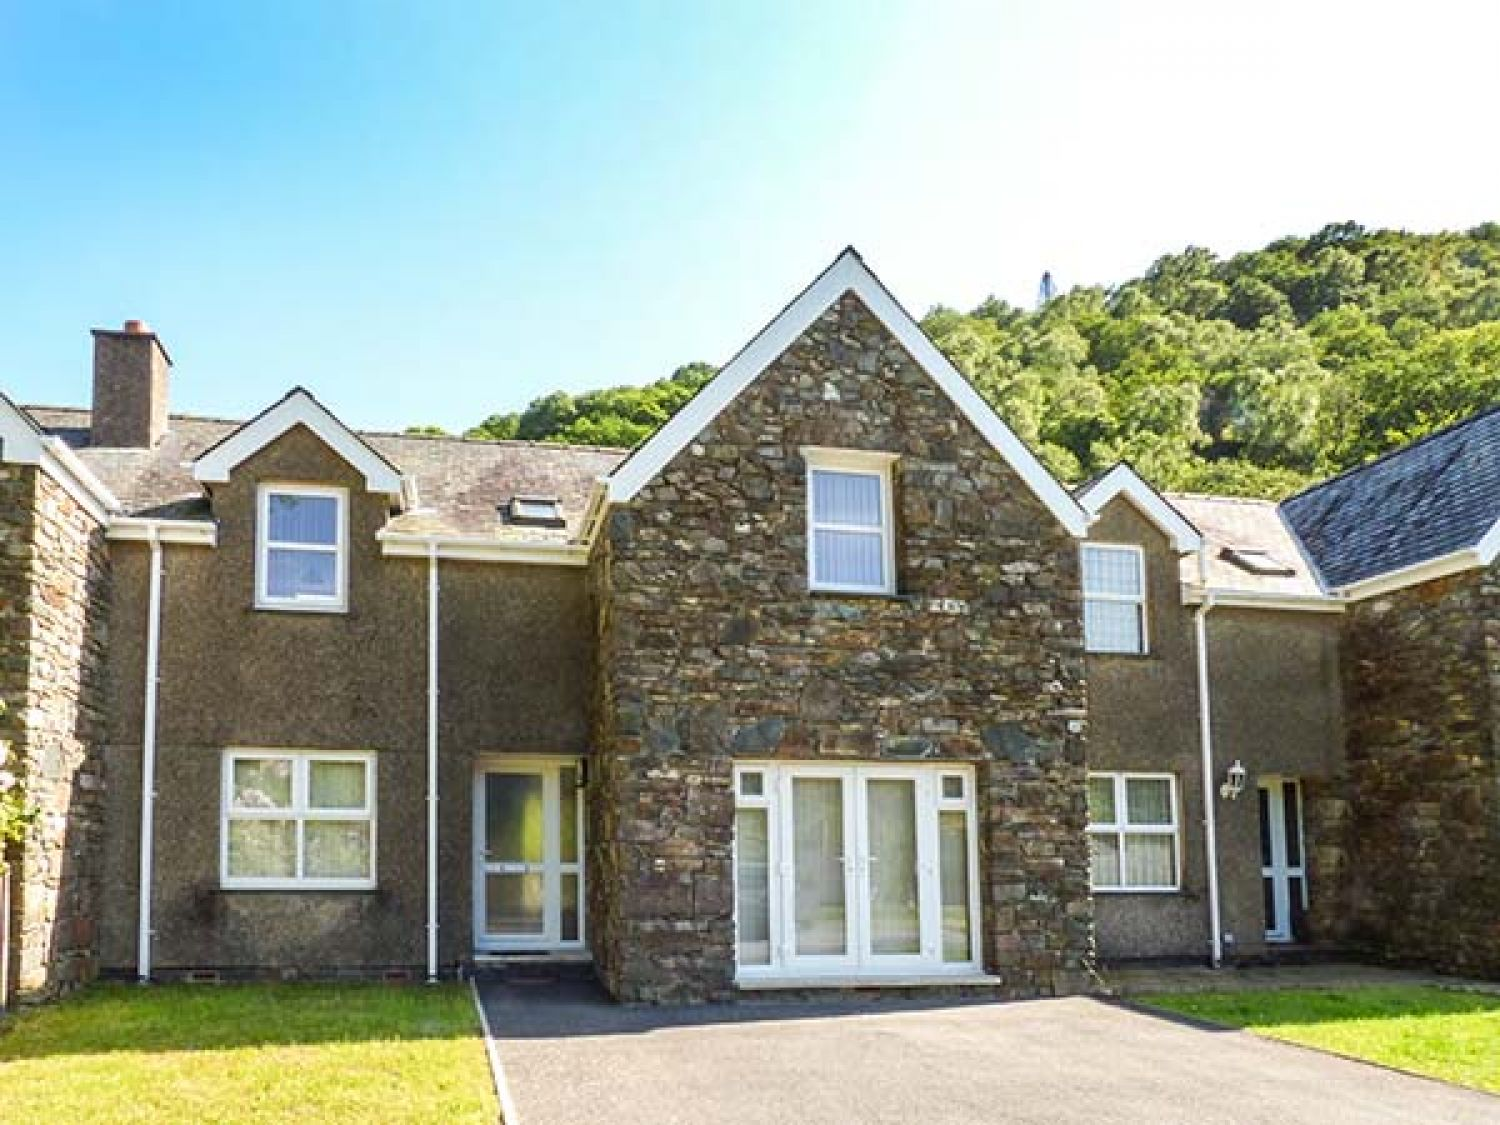 10 Coed Camlyn - North Wales - 923580 - photo 1